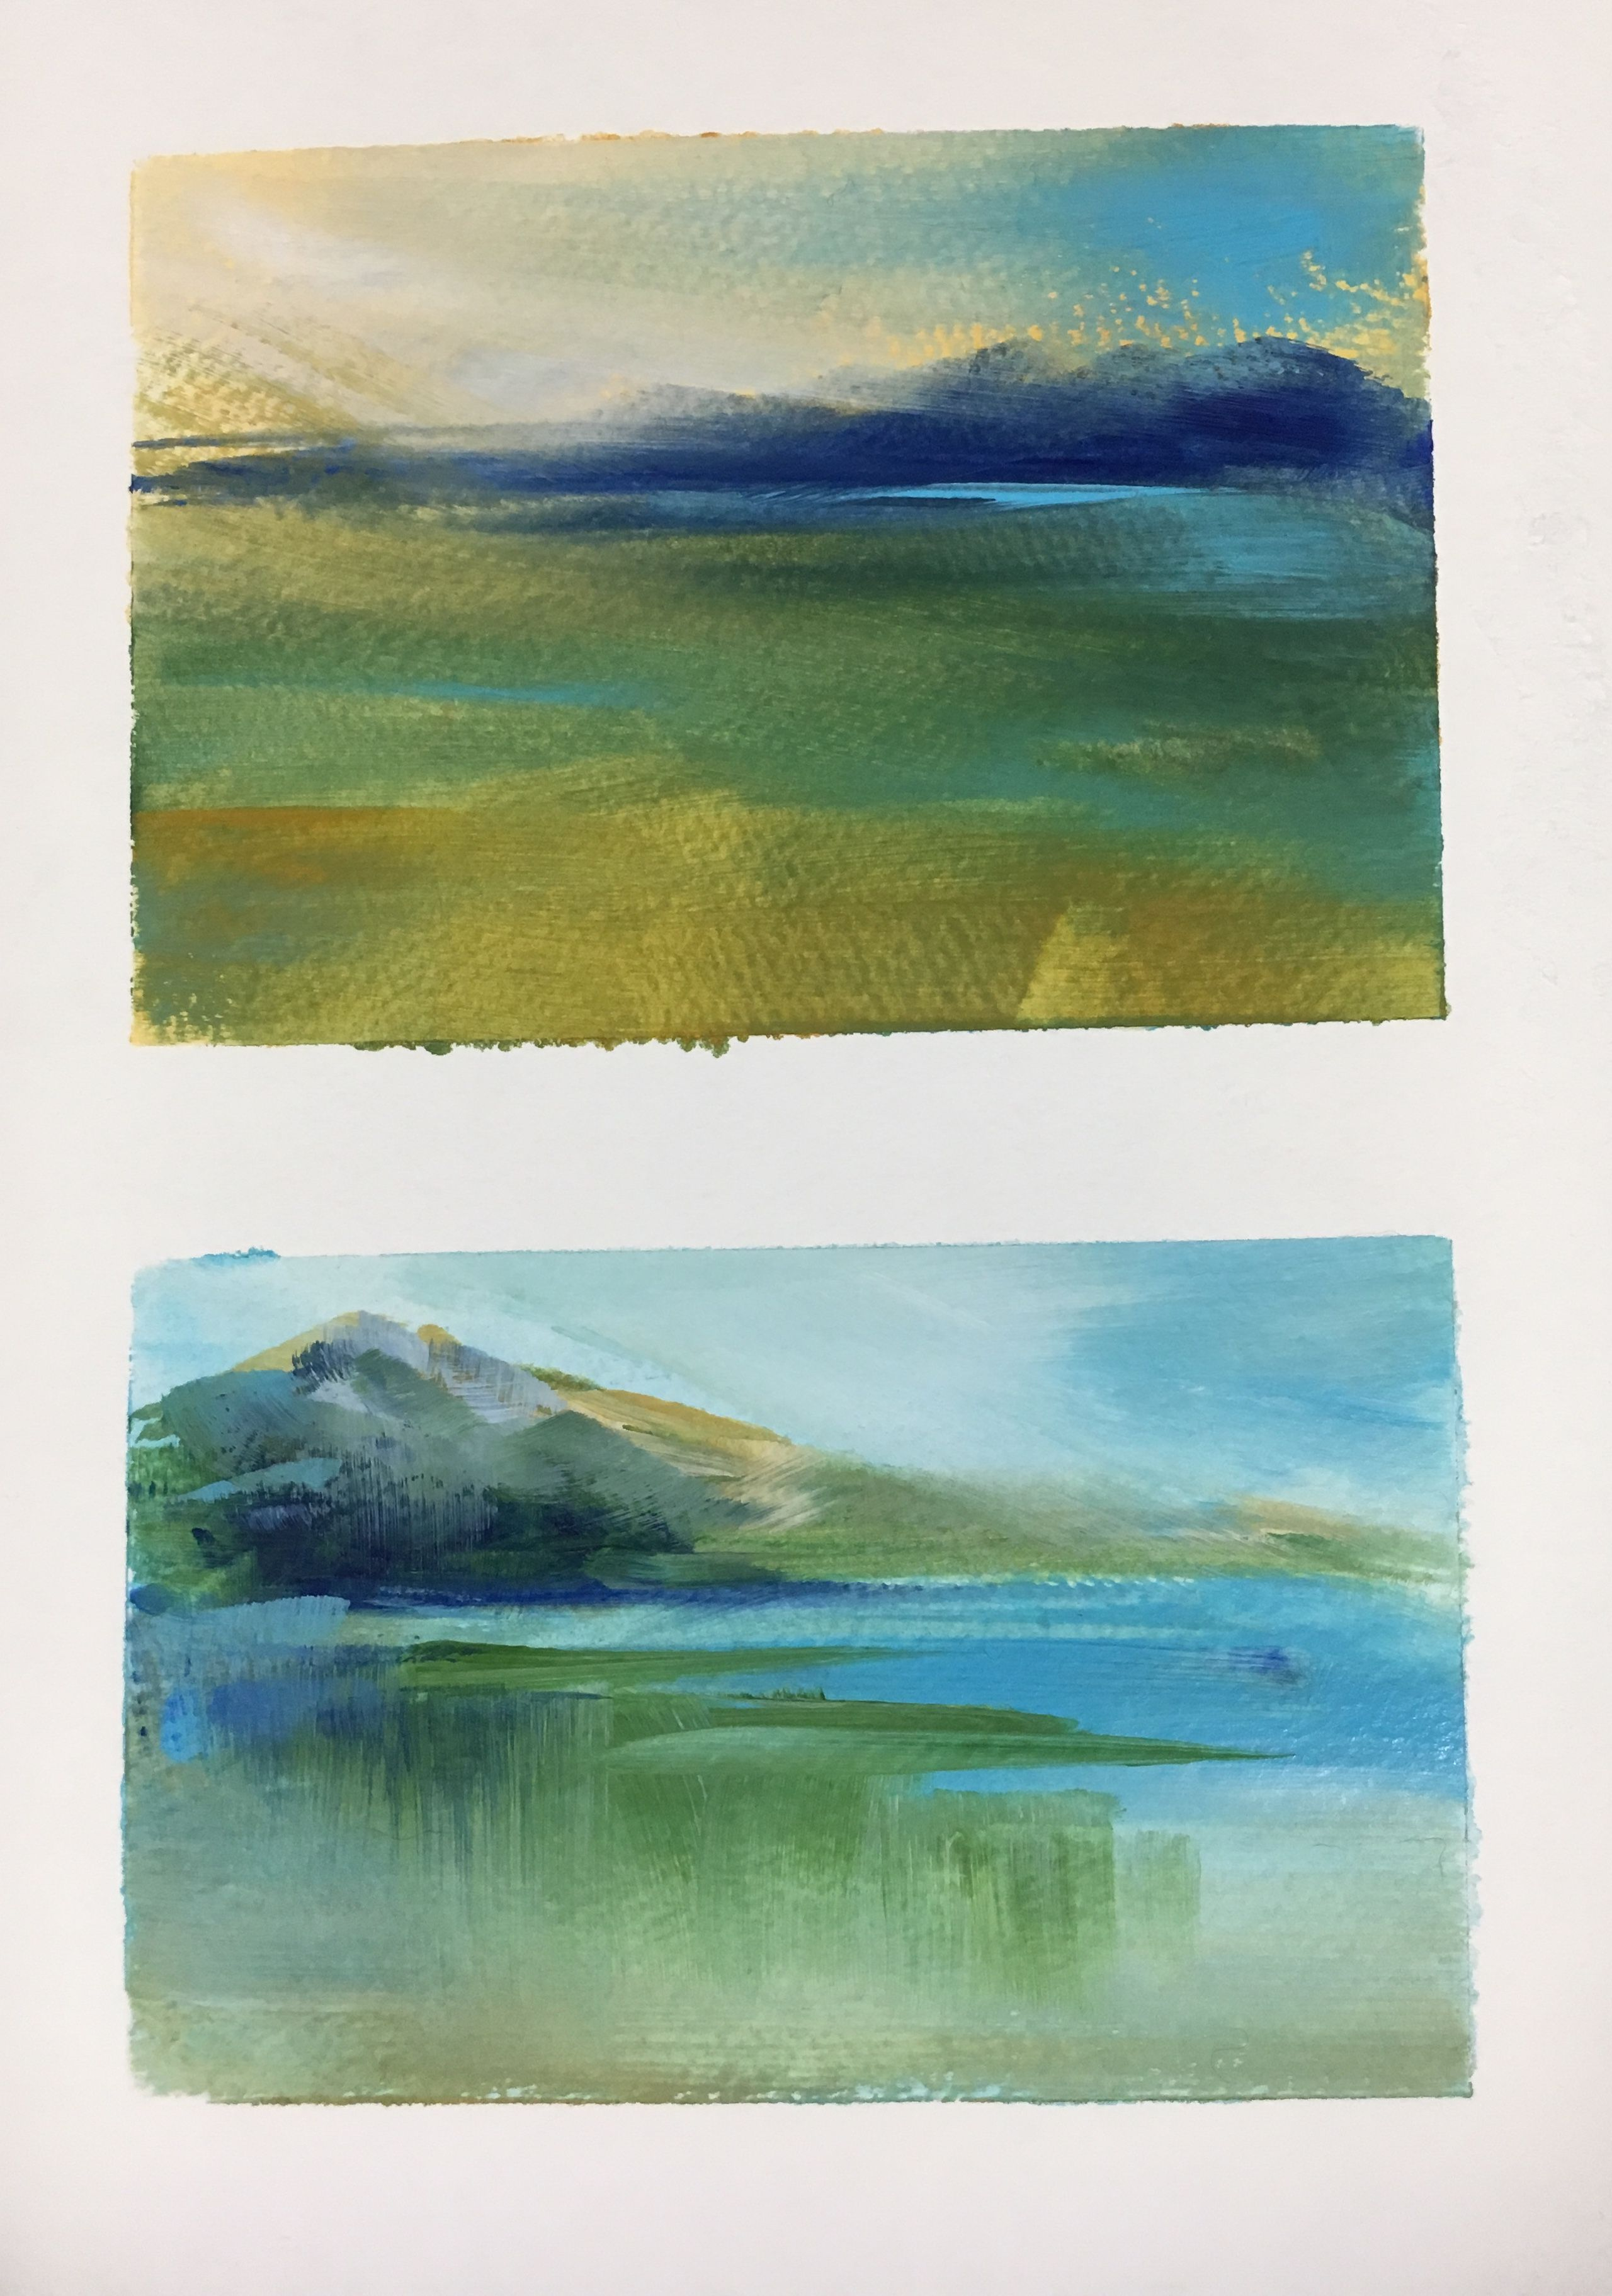 Playing with a limited palette of (Chrome Green Hue, Ultramarine Blue, Light Blue Permanent, Yellow Oxide, and Titanium White). Acrylic on paper. #abstractlandscape #atmosphericpainting #canadianartist #contemporaryartist #landscapeartist #modernart #fineart #contemporarypainting #artofinstagram #interiordesigners #studioart #creativehomeowner #affordableart